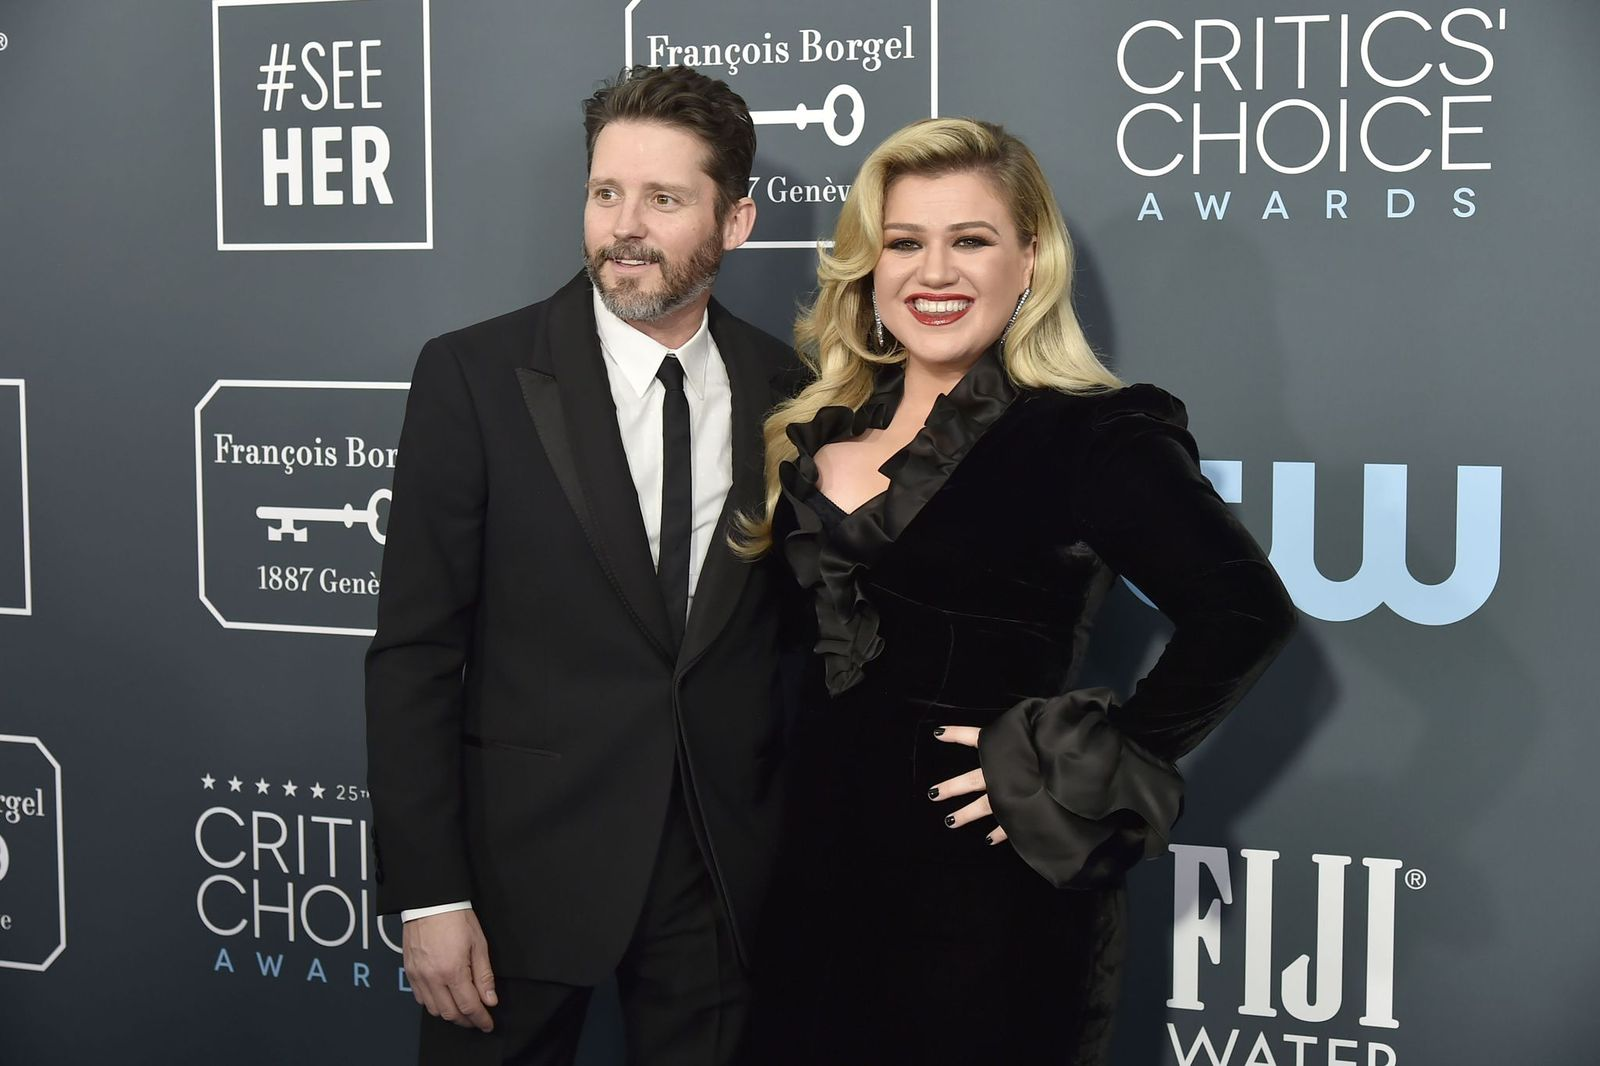 Brandon Blackstock and Kelly Clarkson at the arrivals for the 25th Annual Critics' Choice Awards at Barker Hangar on January 12, 2020 | Photo: Getty Images